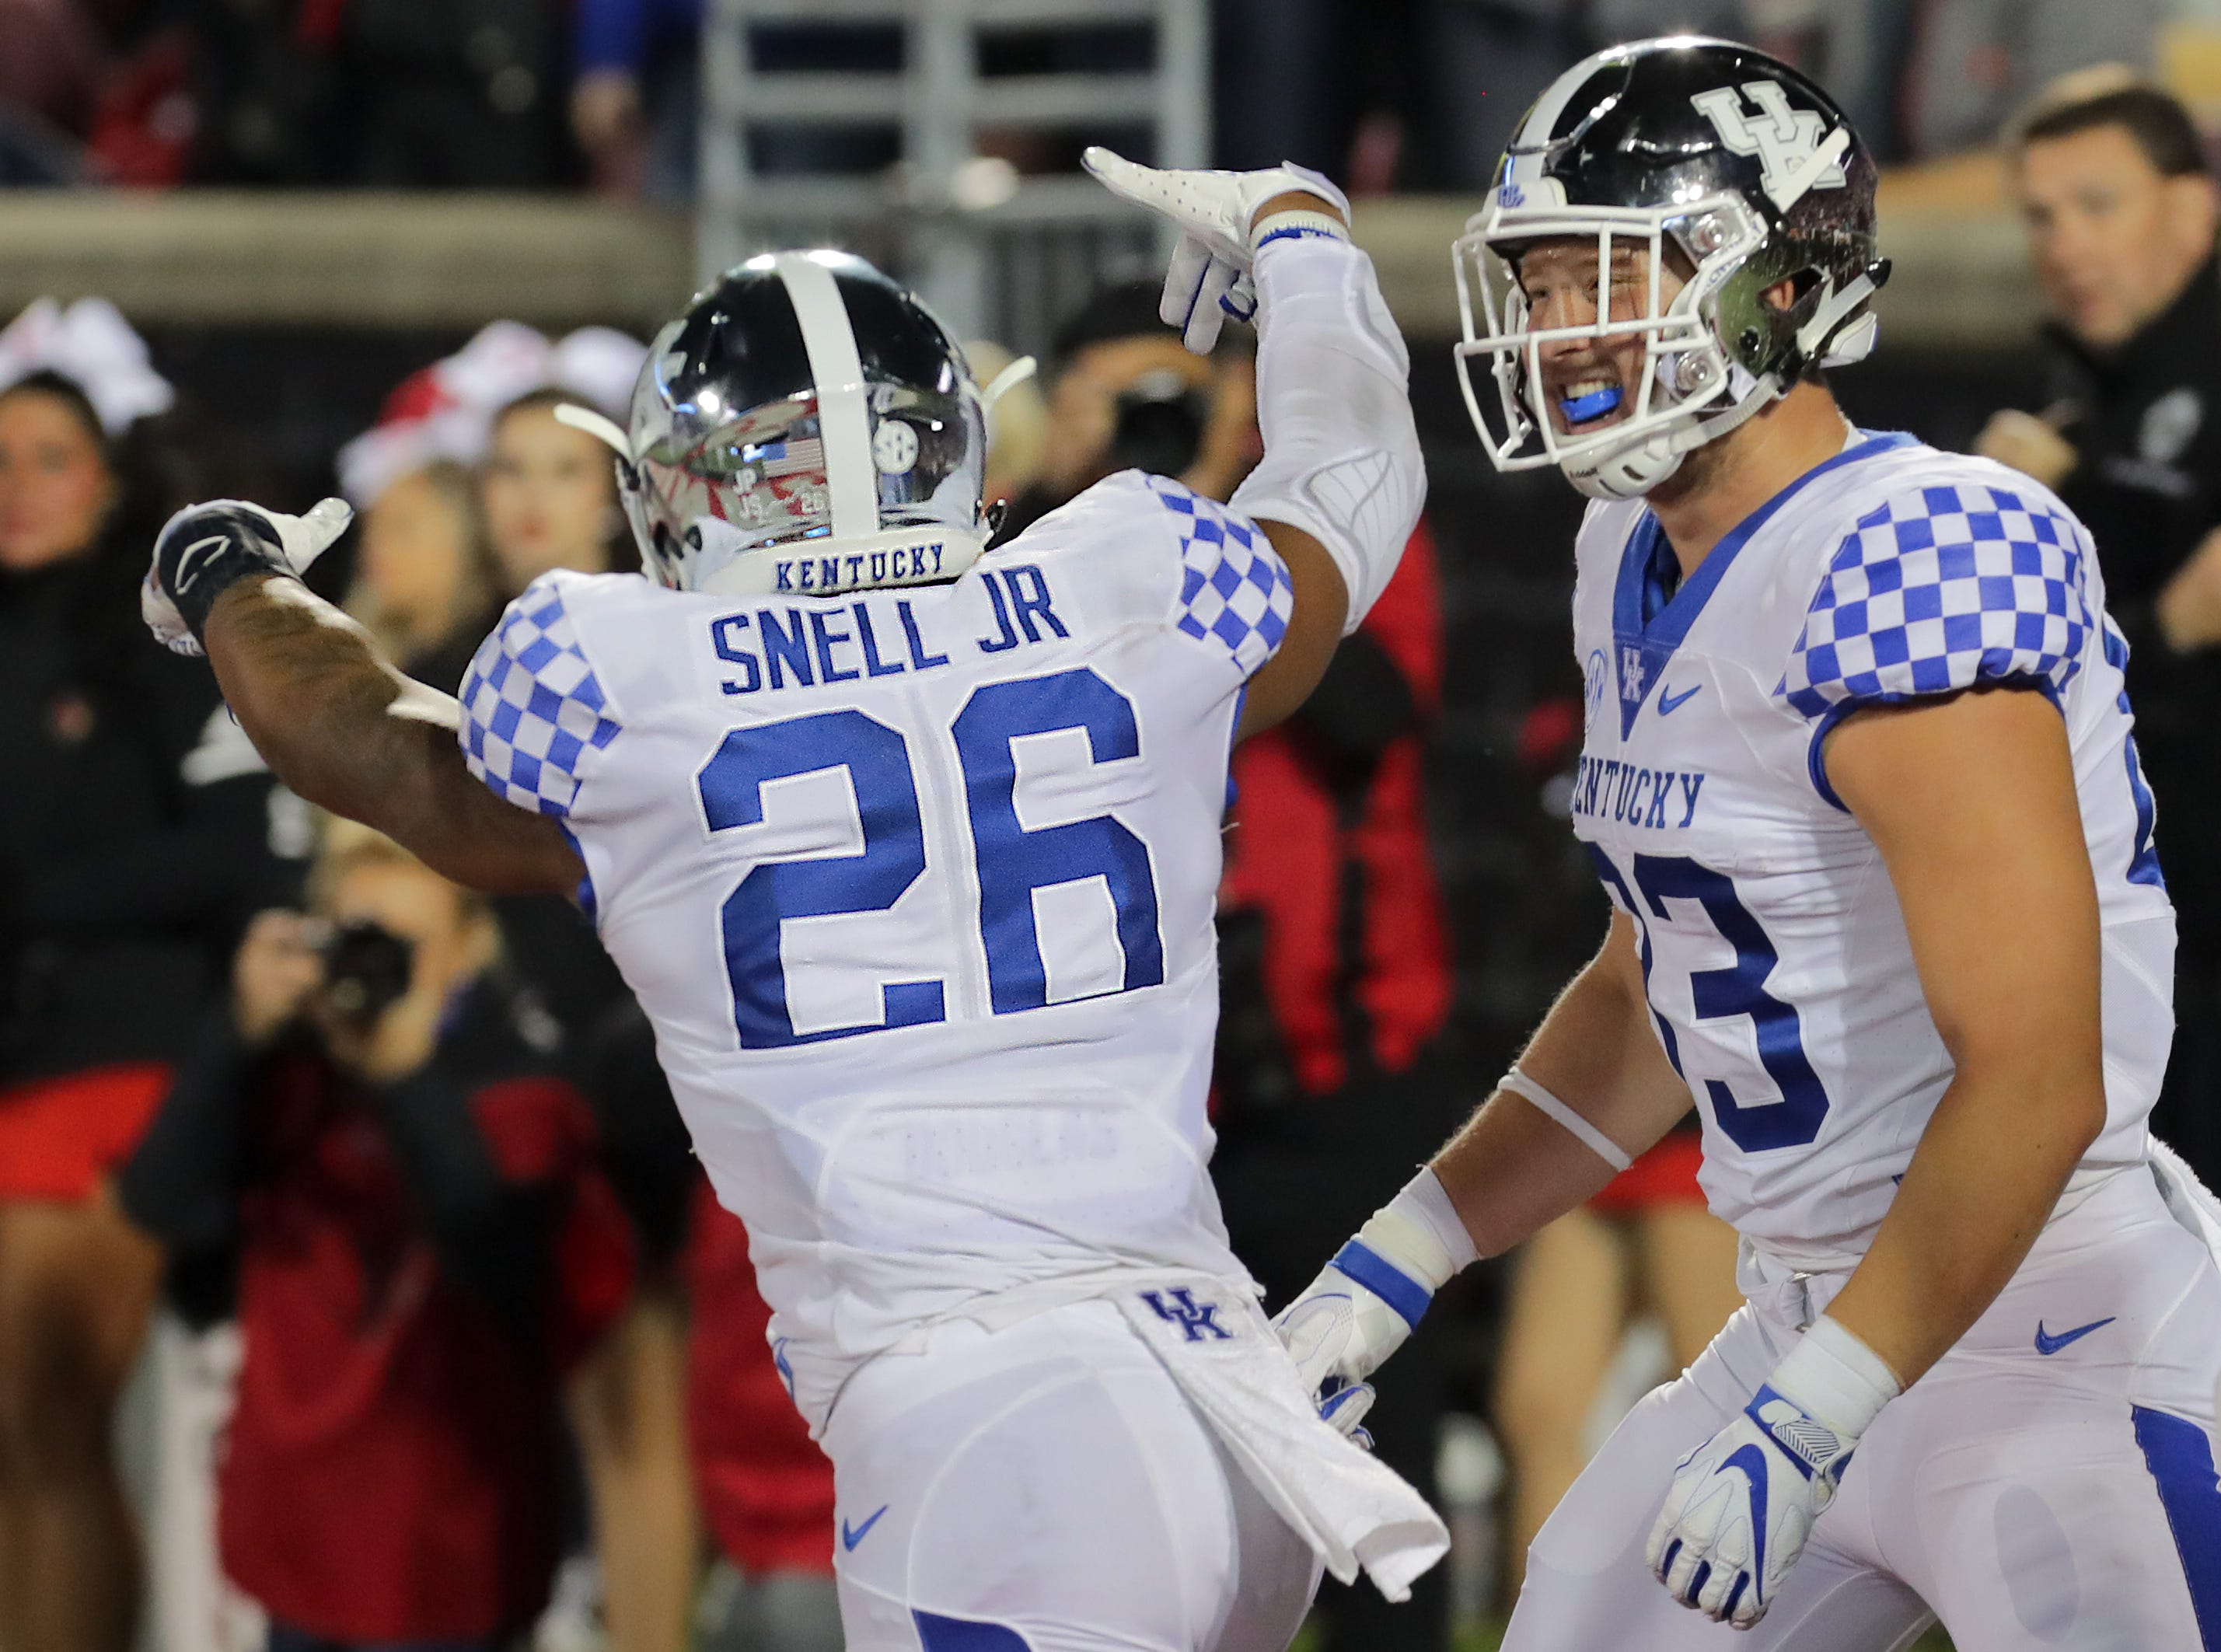 Kentucky's Benny Snell Jr. signals the upside down Ls after scoring another touchdown against Louisville. Nov. 24, 2018